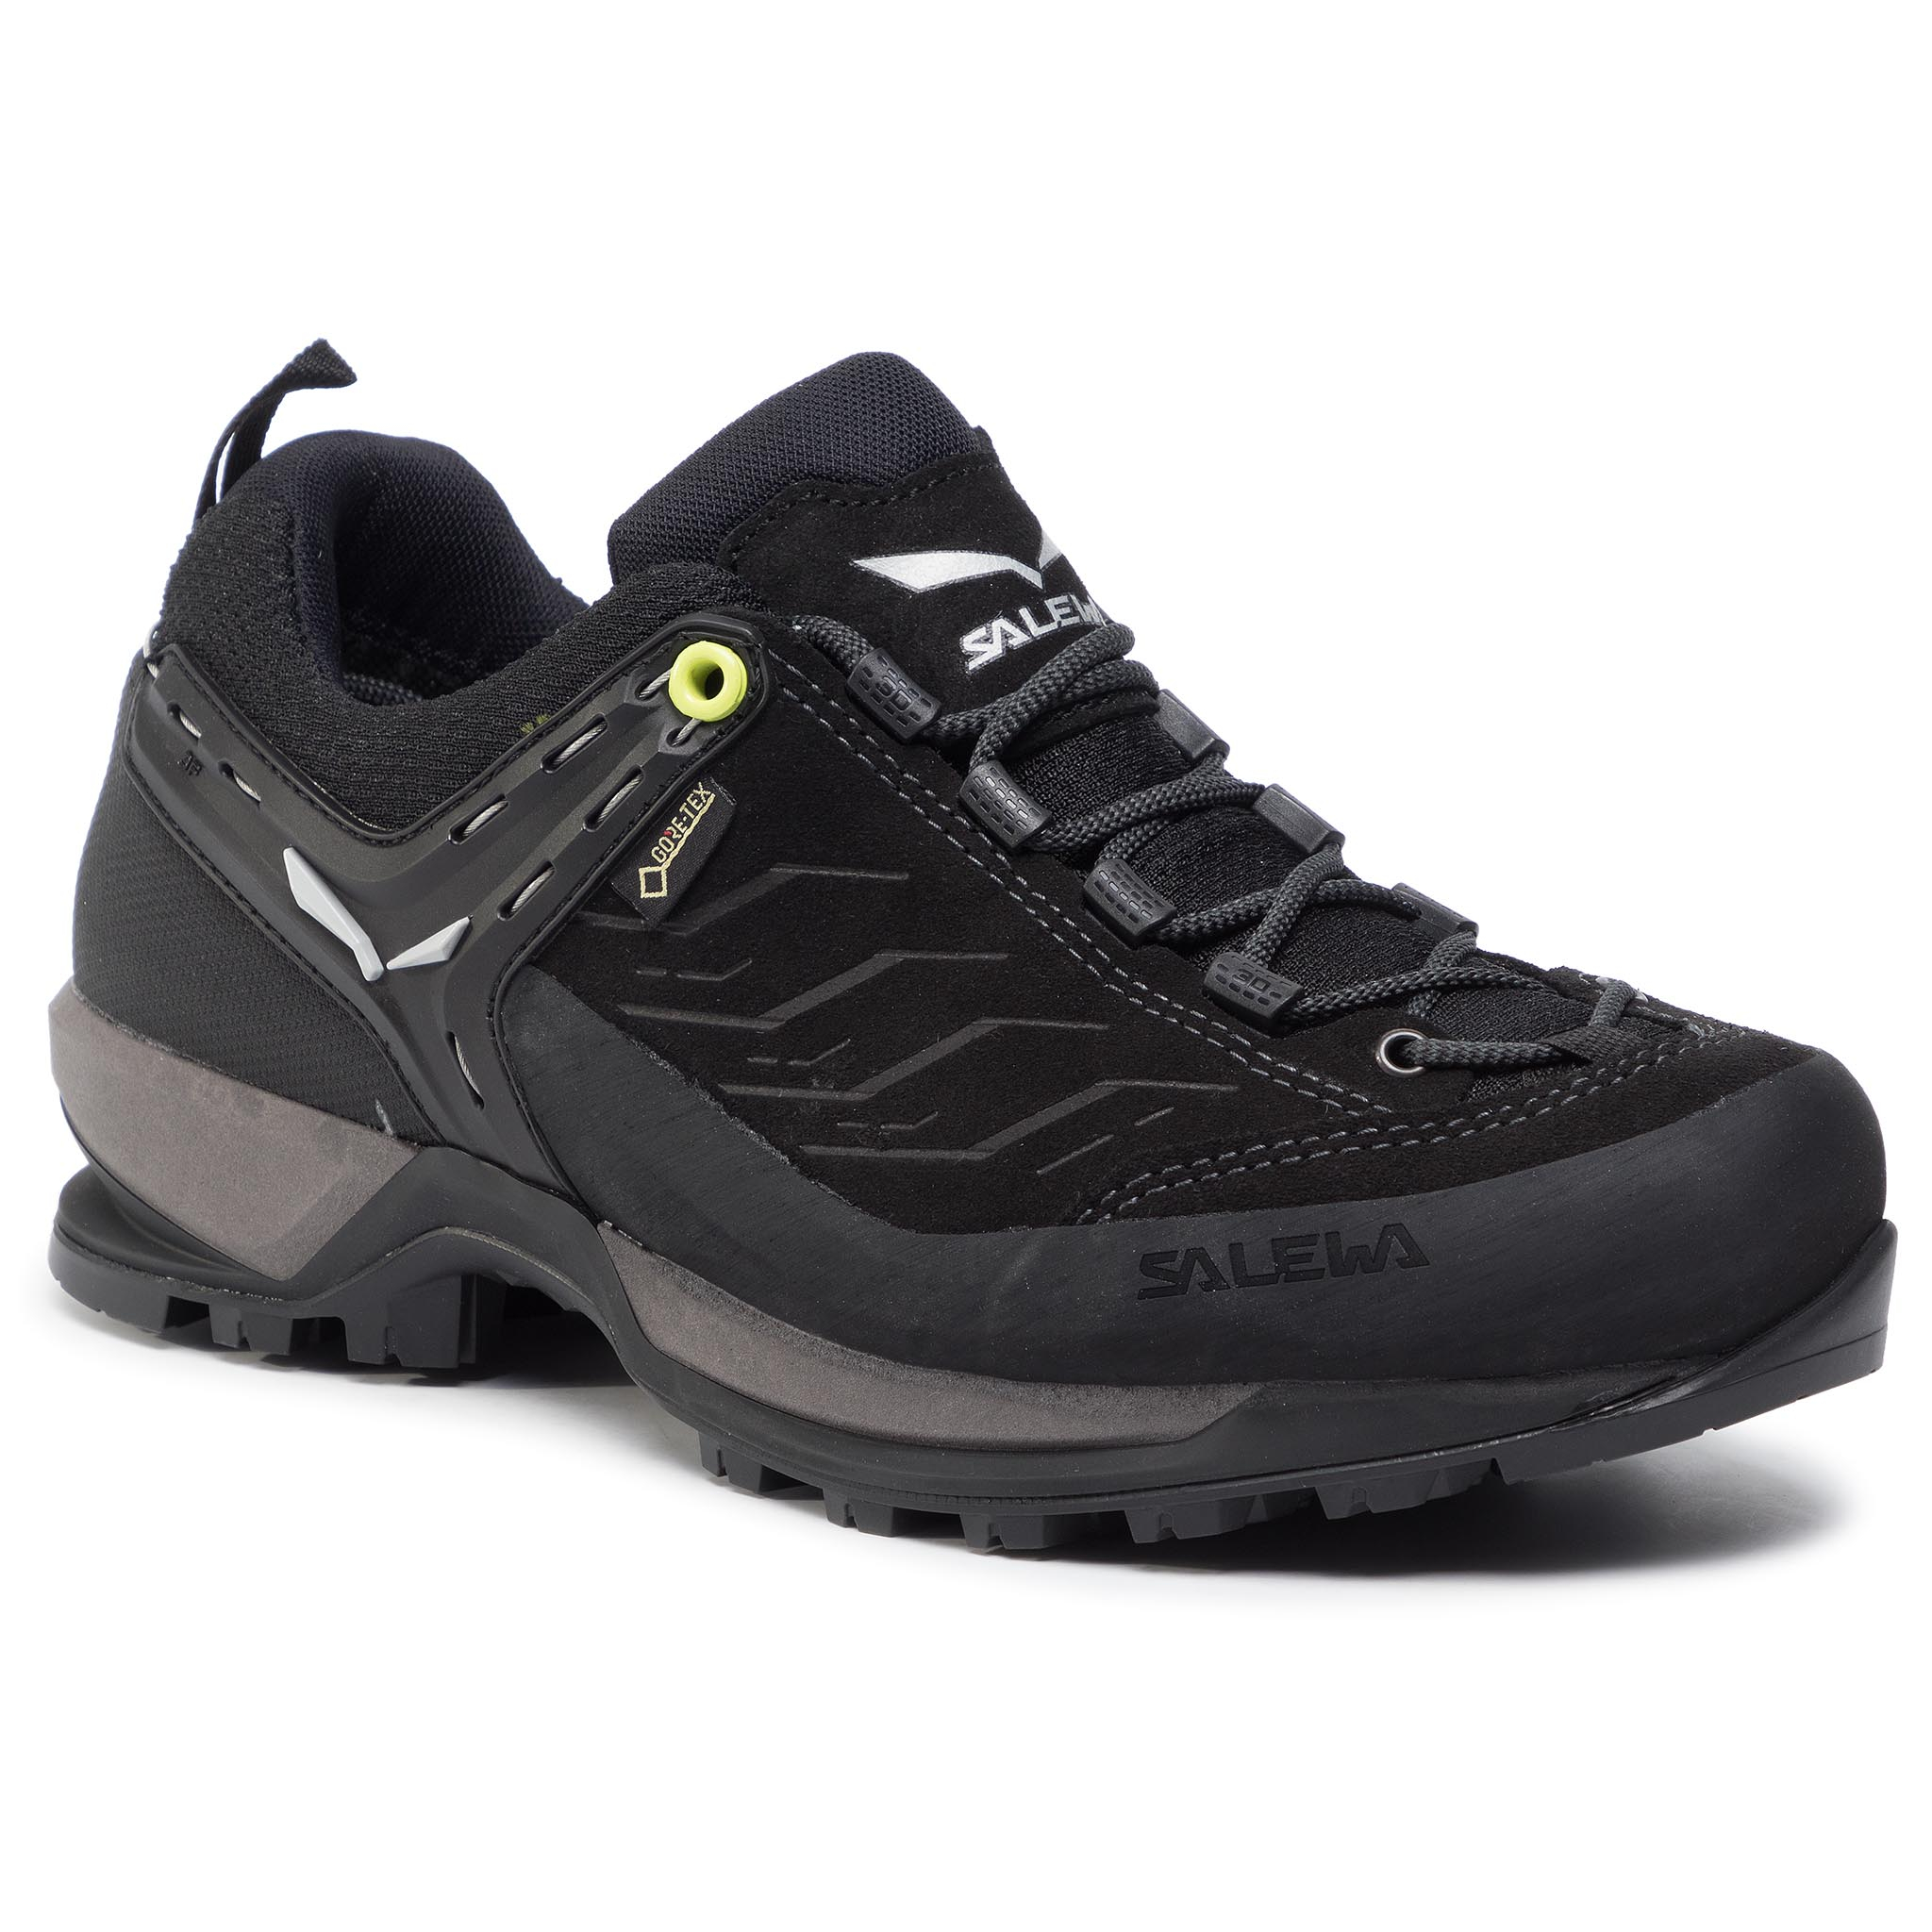 Trekkings Salewa - Mnt Trainer Gtx Gore-Tex 63467-0971 Black/Black imagine epantofi.ro 2021